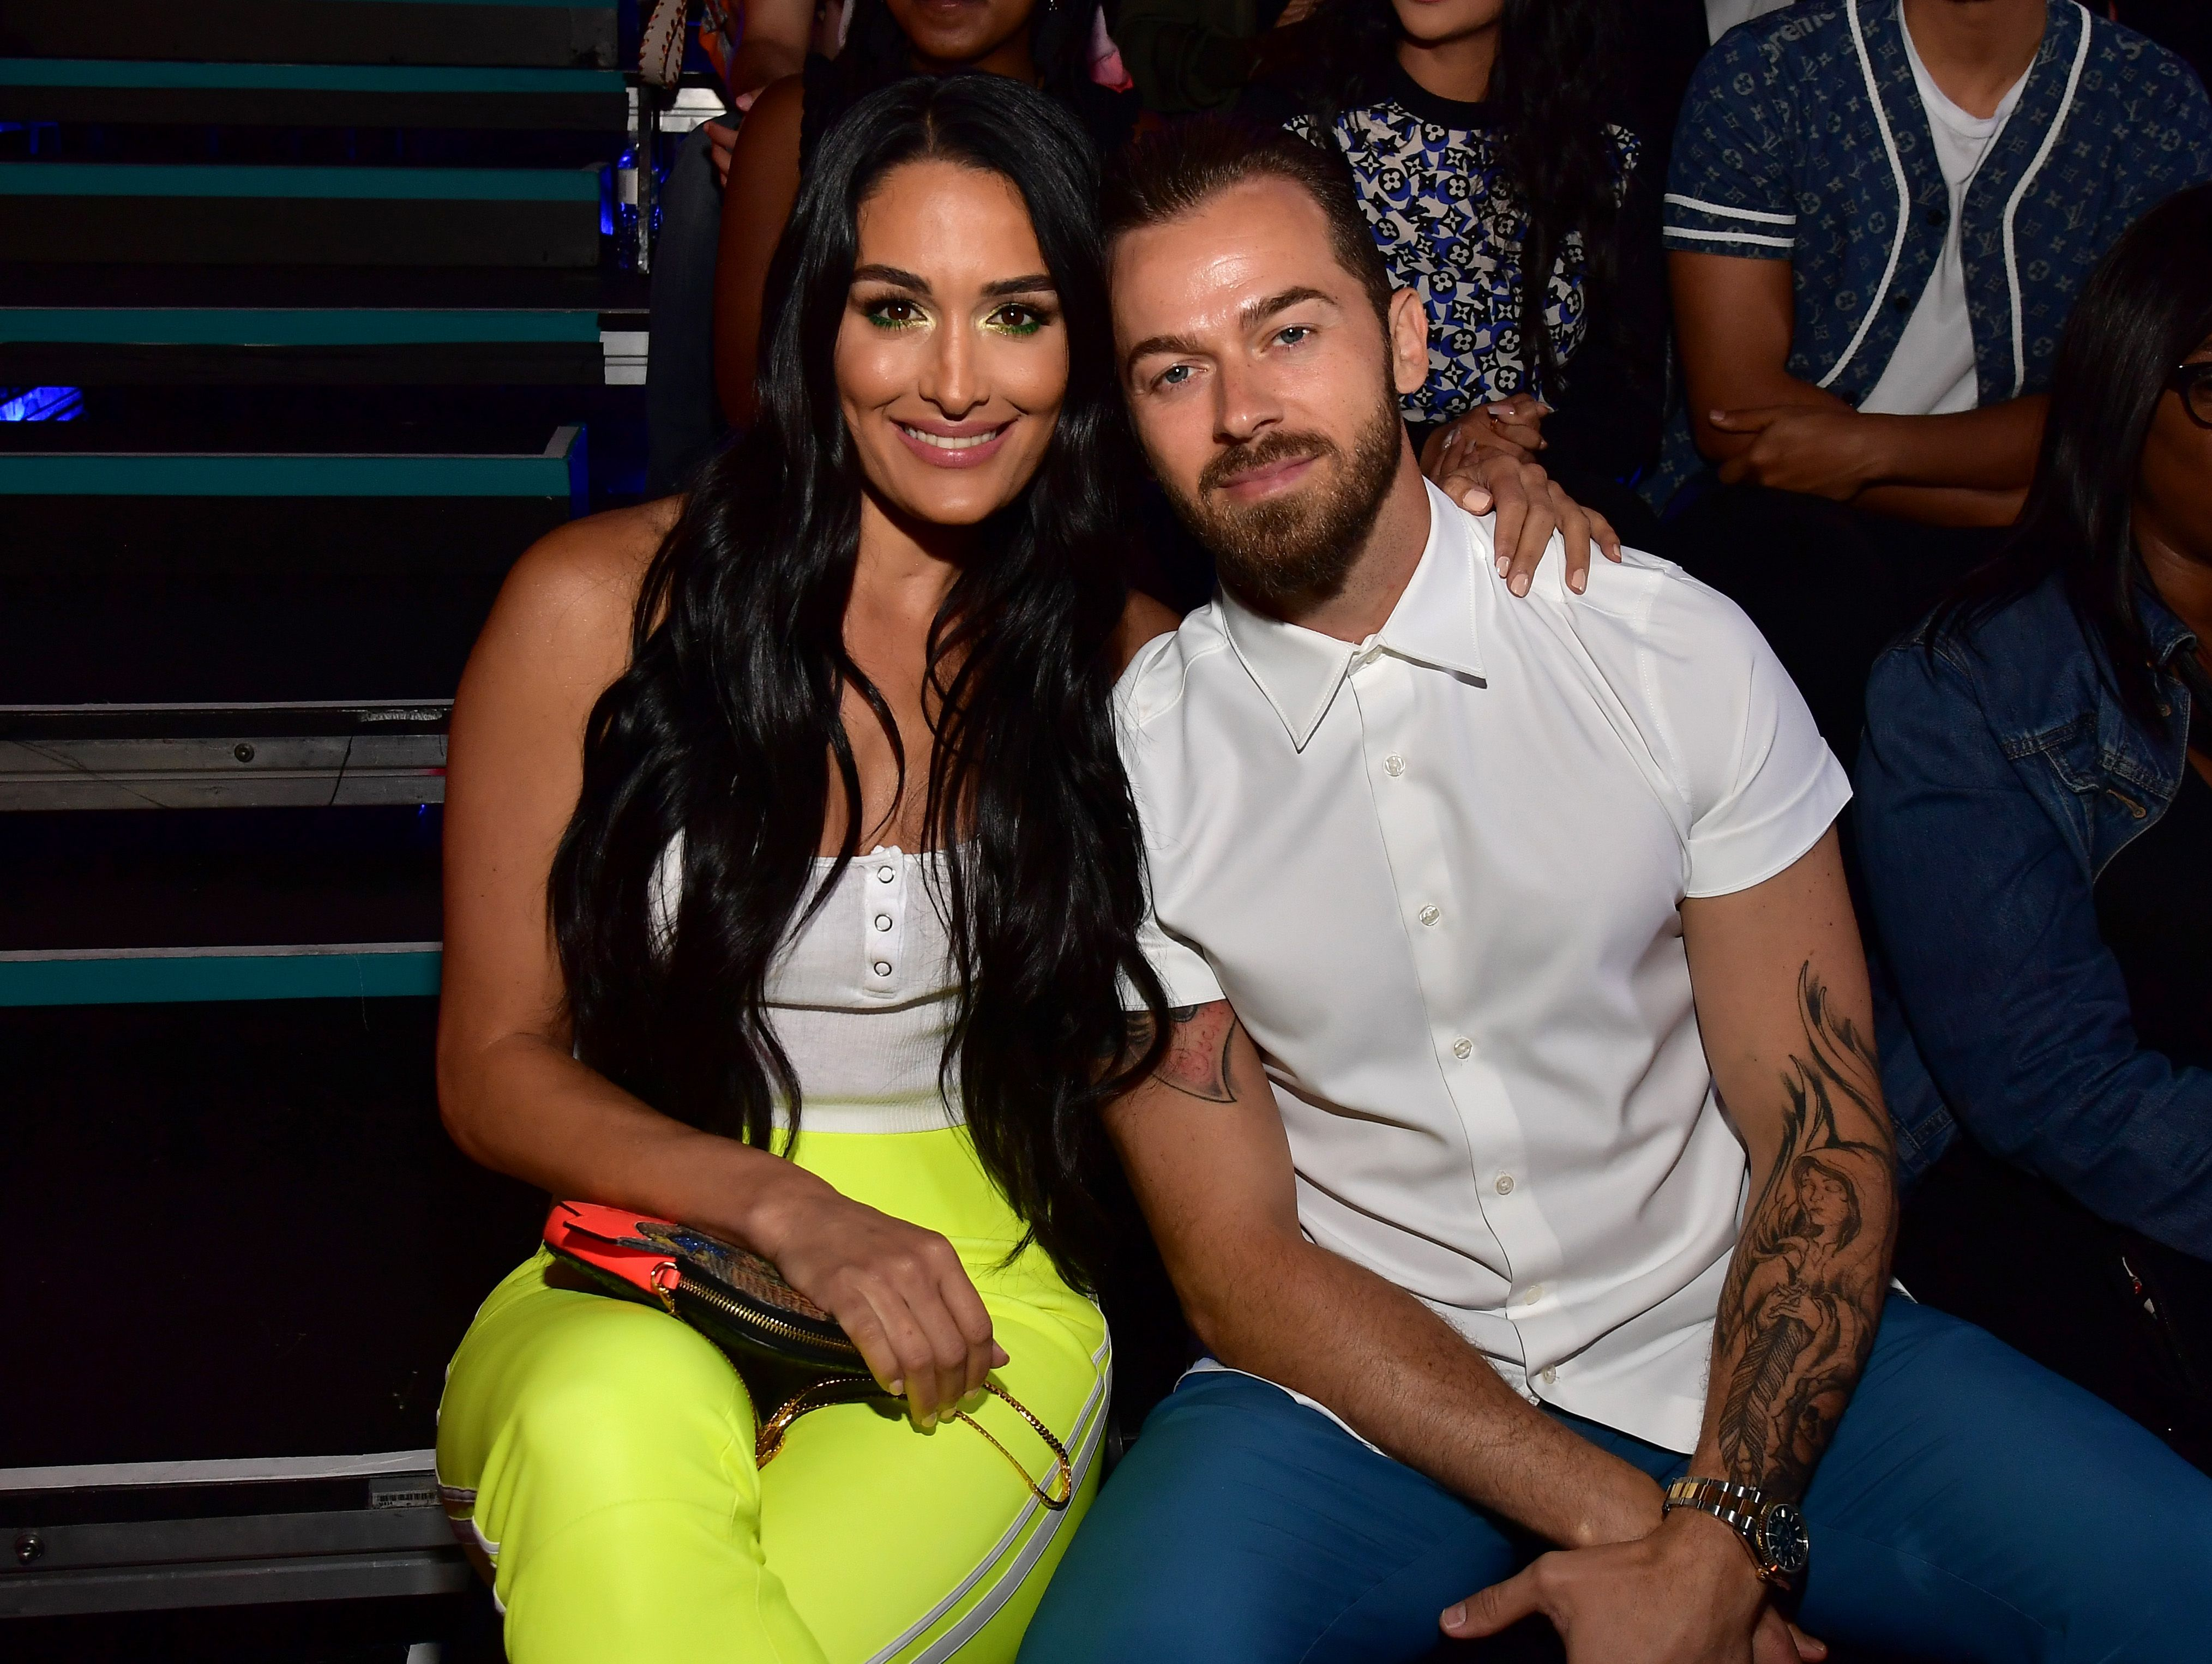 Nikki Bella and Artem Chigvintsev at Nickelodeon Kids' Choice Sports 2019 at Barker Hangar on July 11, 2019. | Photo: Getty Images